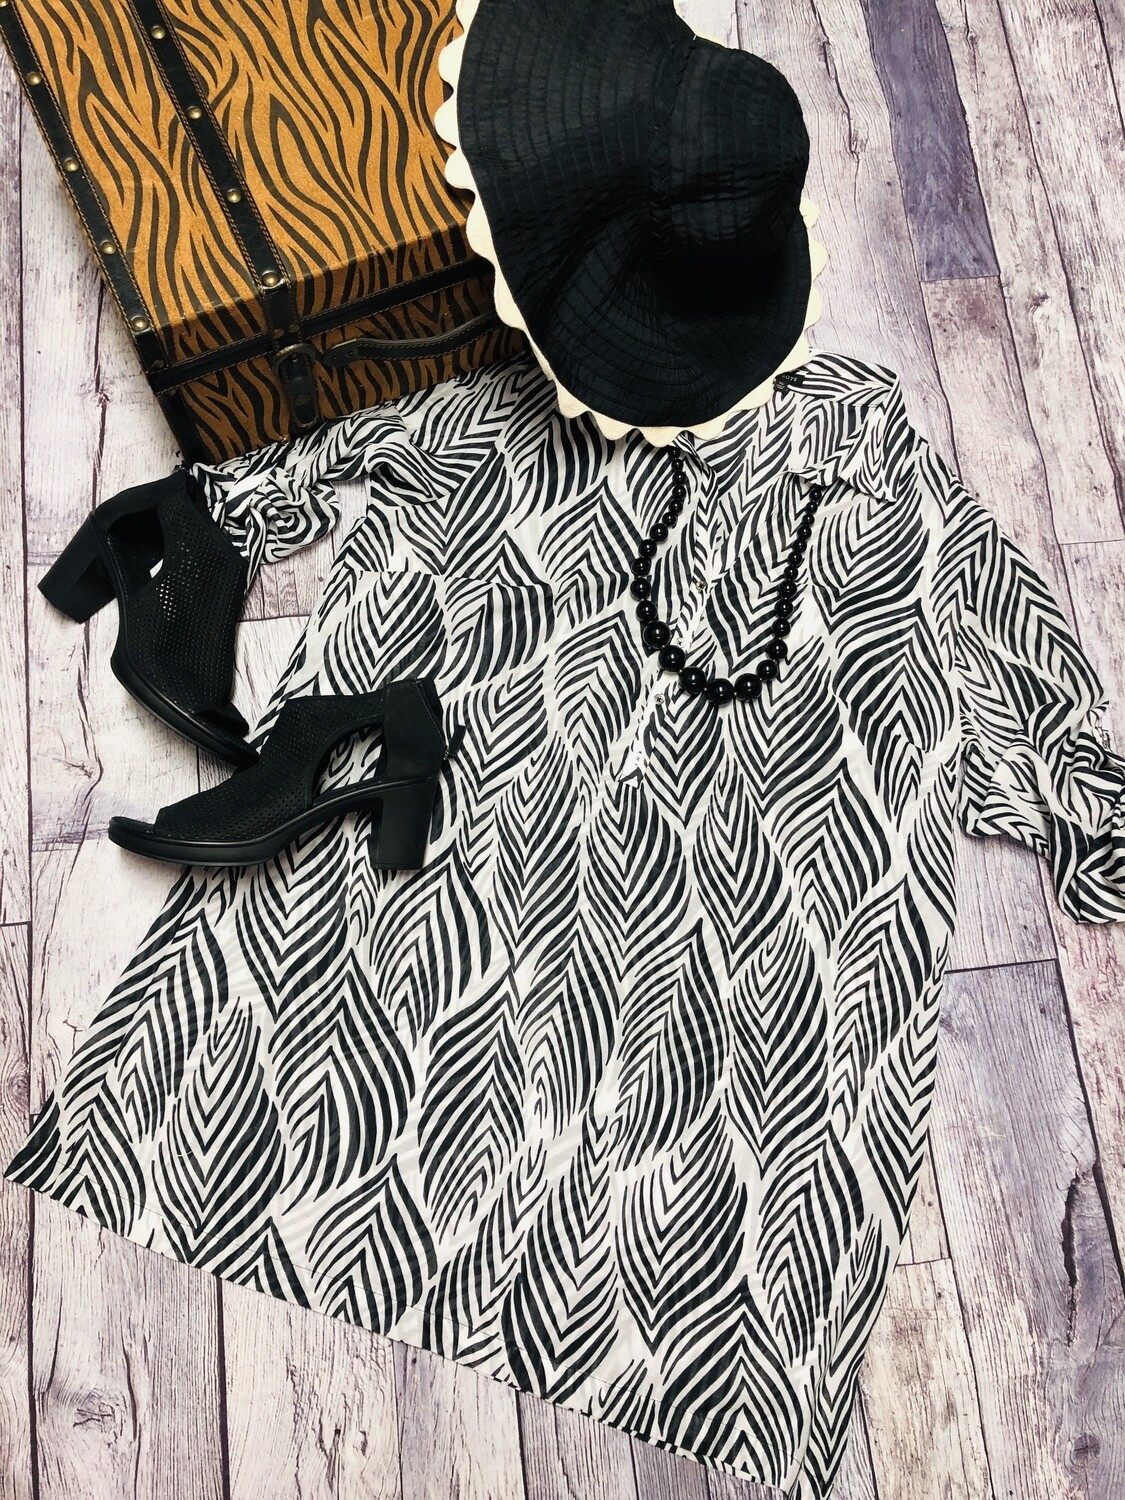 TALBOTS Zebra Stripe Long Cotton Tunic Blouse XL